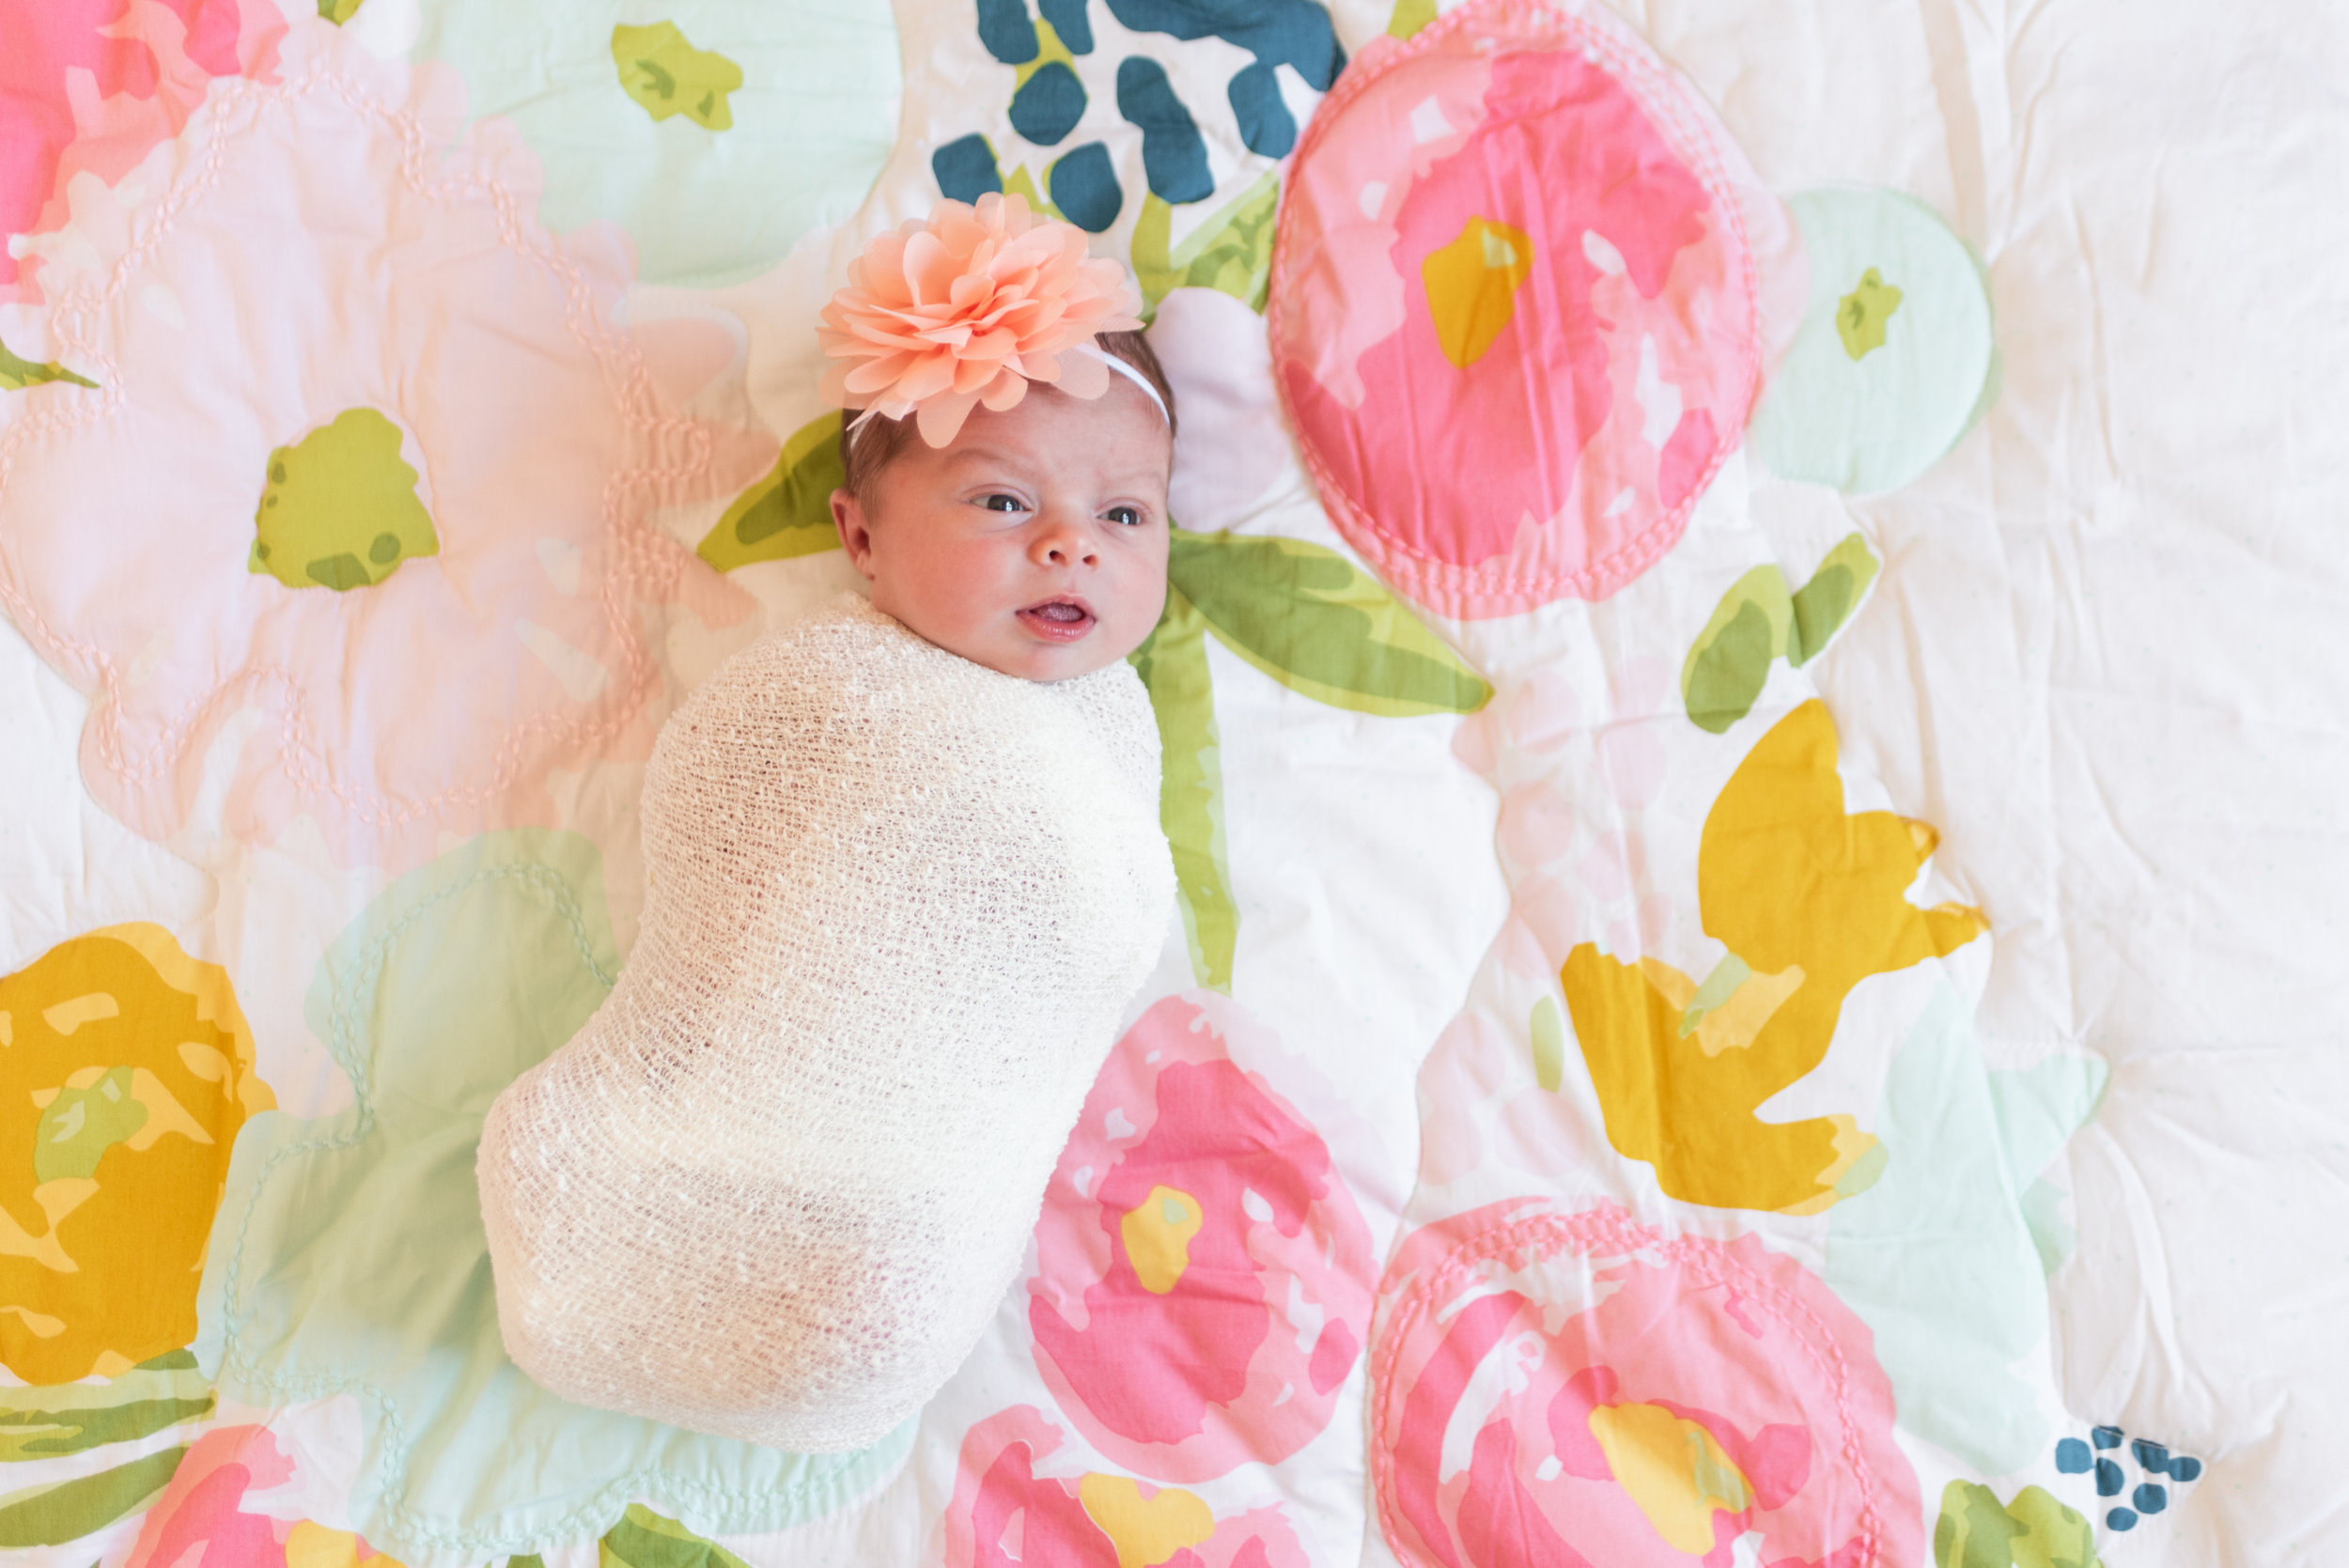 Eliana Snyder Newborn (53 of 194).jpg